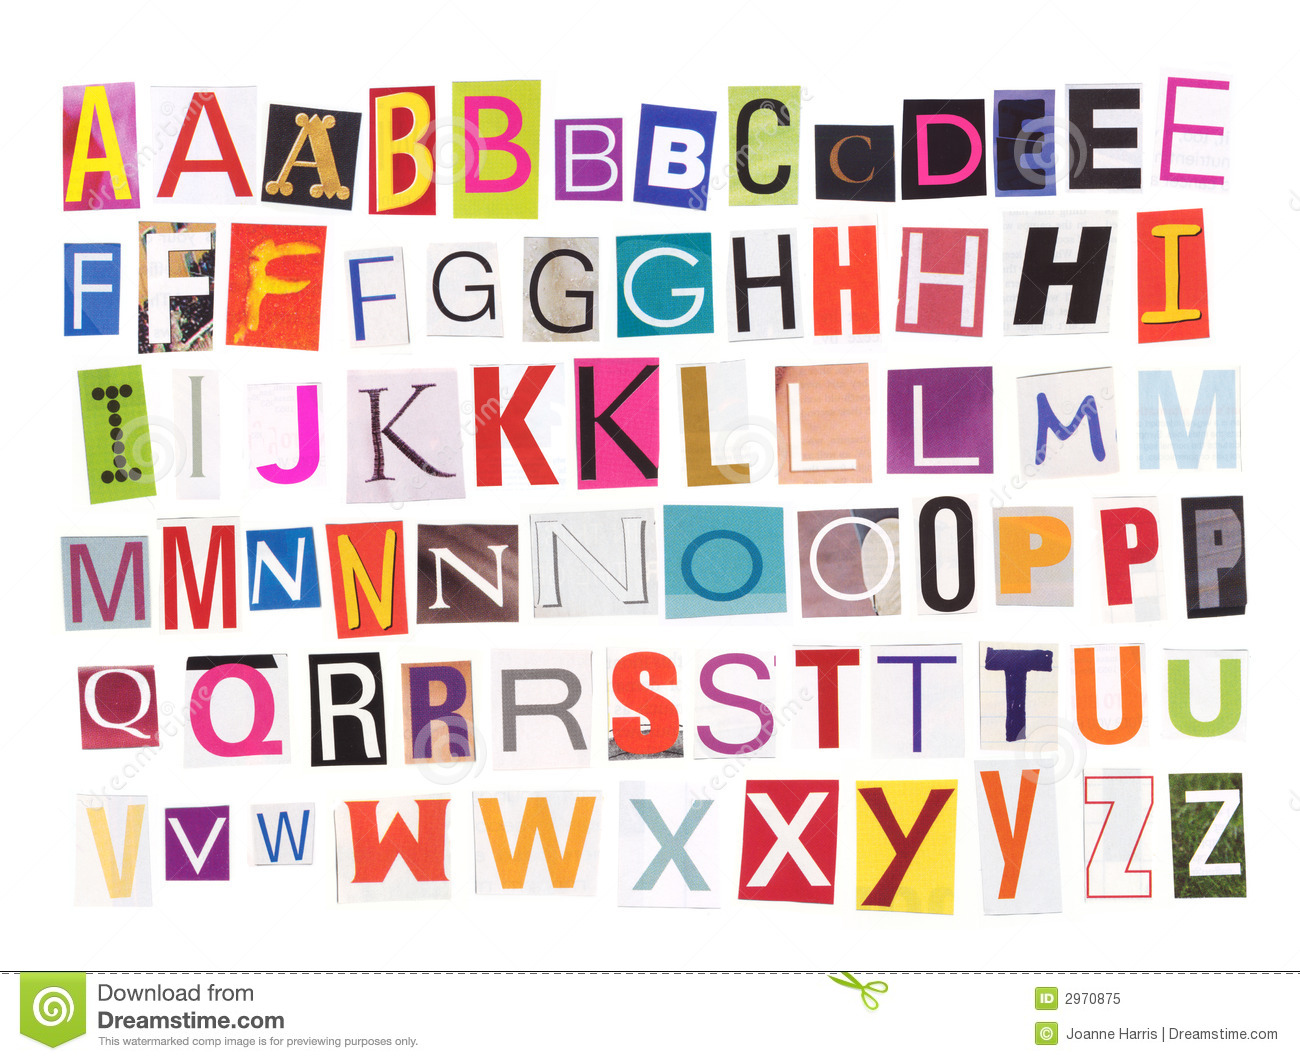 Alphabet - Magazine Cutouts Royalty Free Stock Photo - Image: 2970875